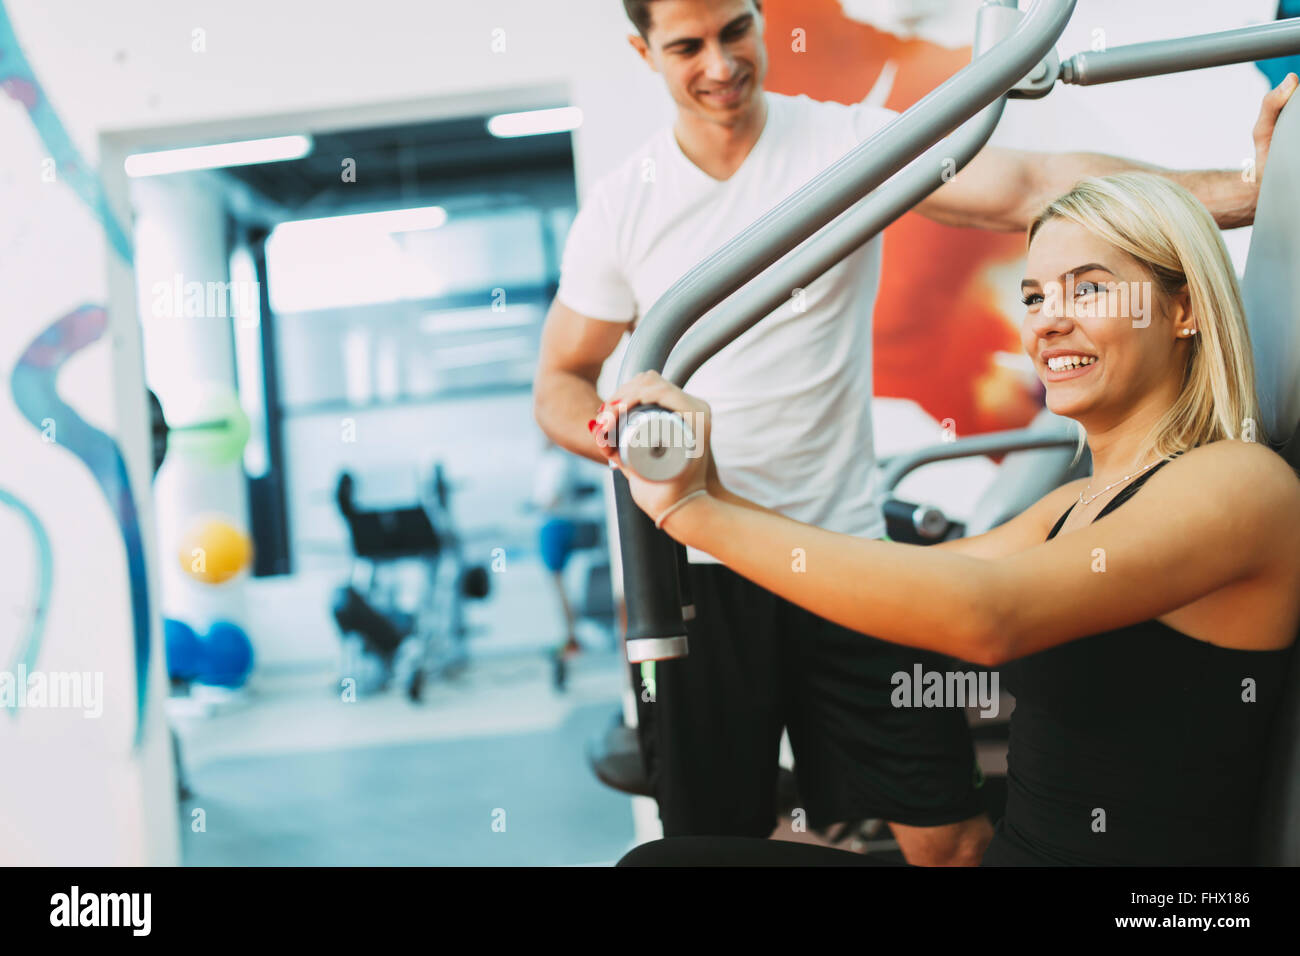 Beautiful woman exercising in gym with some help by personal trainer - Stock Image